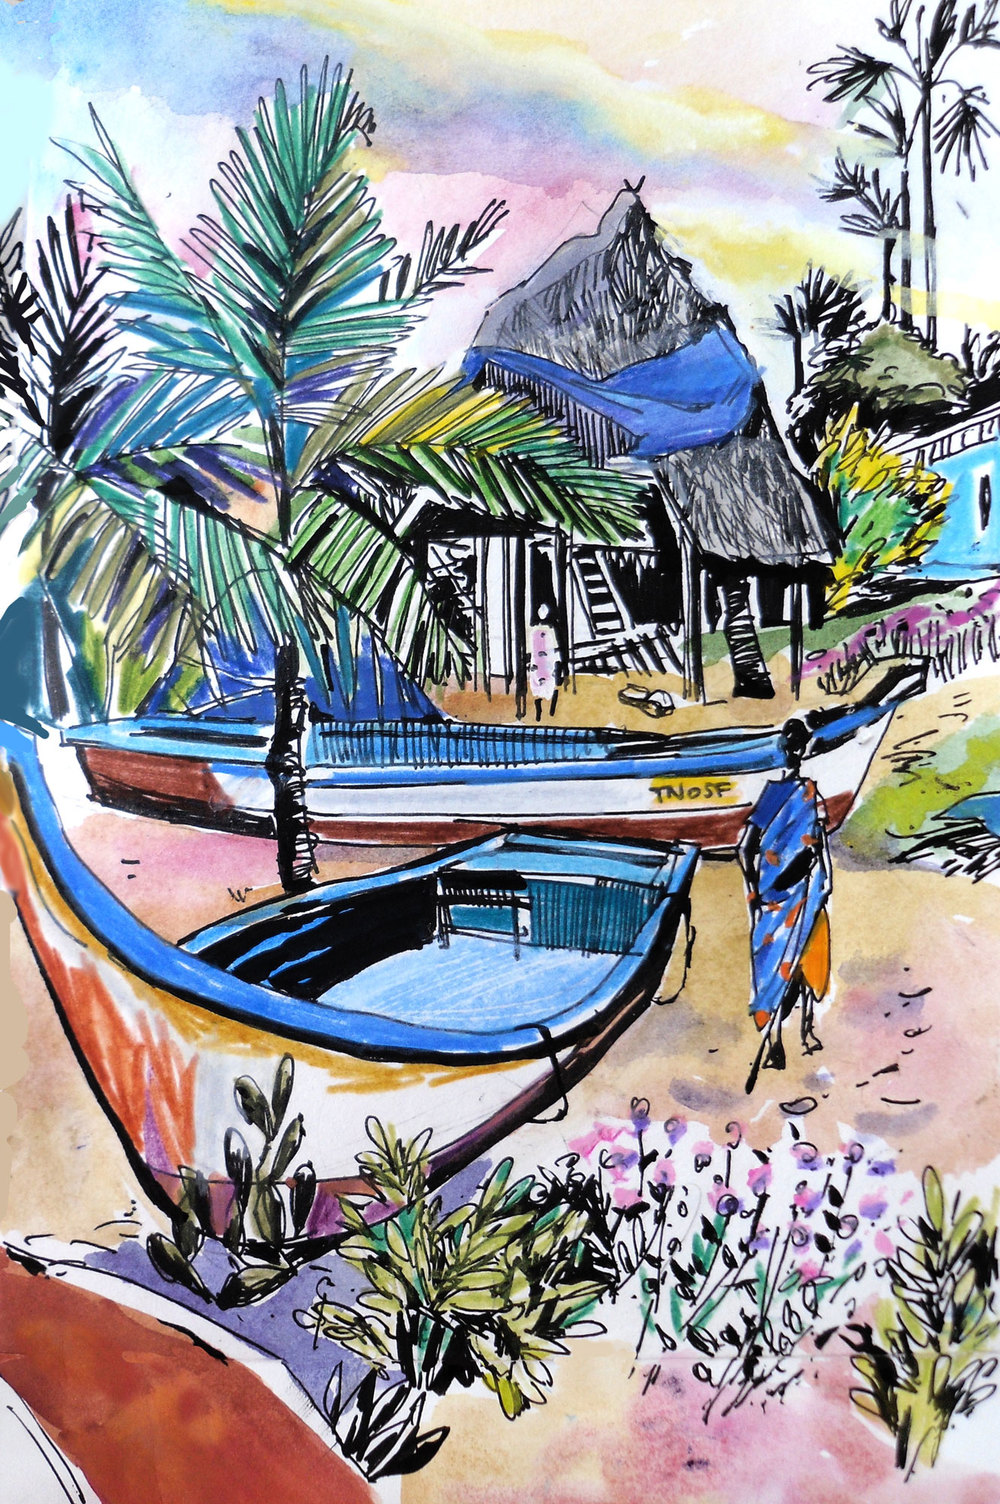 title: Waves beach guest house. Aurobeach. Pondicherry. INDIA size of Canson sketchbook page: 21 cm x 29 cm, technique: watercolors, black pen, watercolor pencils 15 September 2015